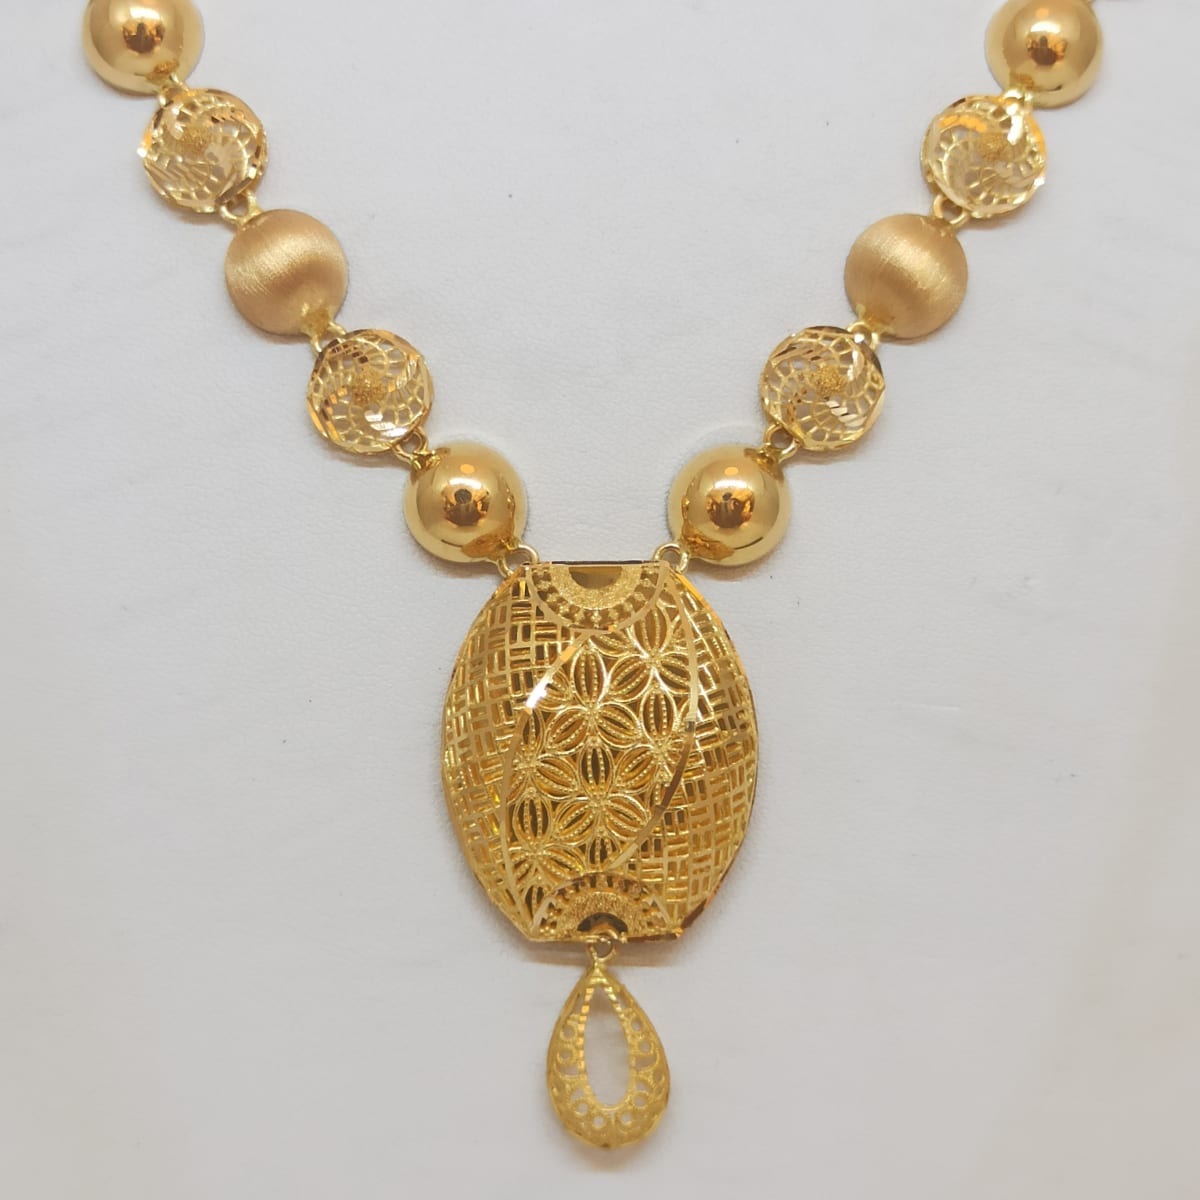 Dhanalakshmi Necklace